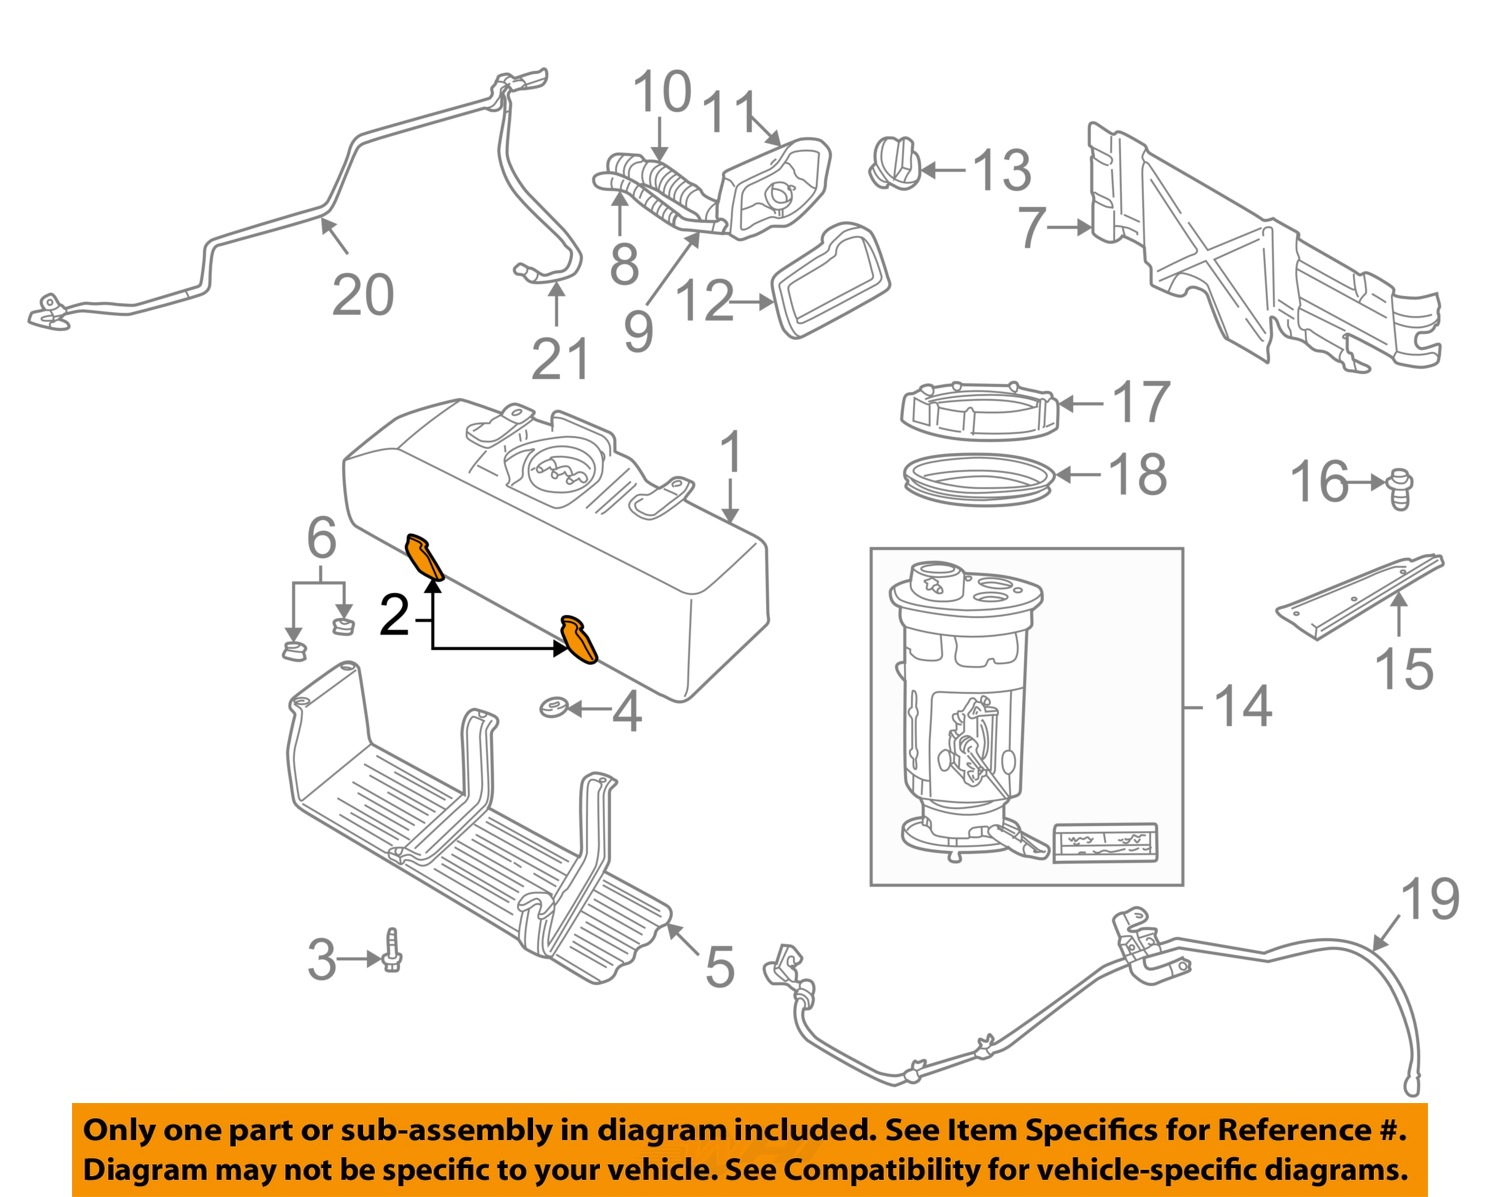 1990 ford fuel system diagram kenwood kdc 138 wiring 2 87 dodge dakota tank free engine image for user